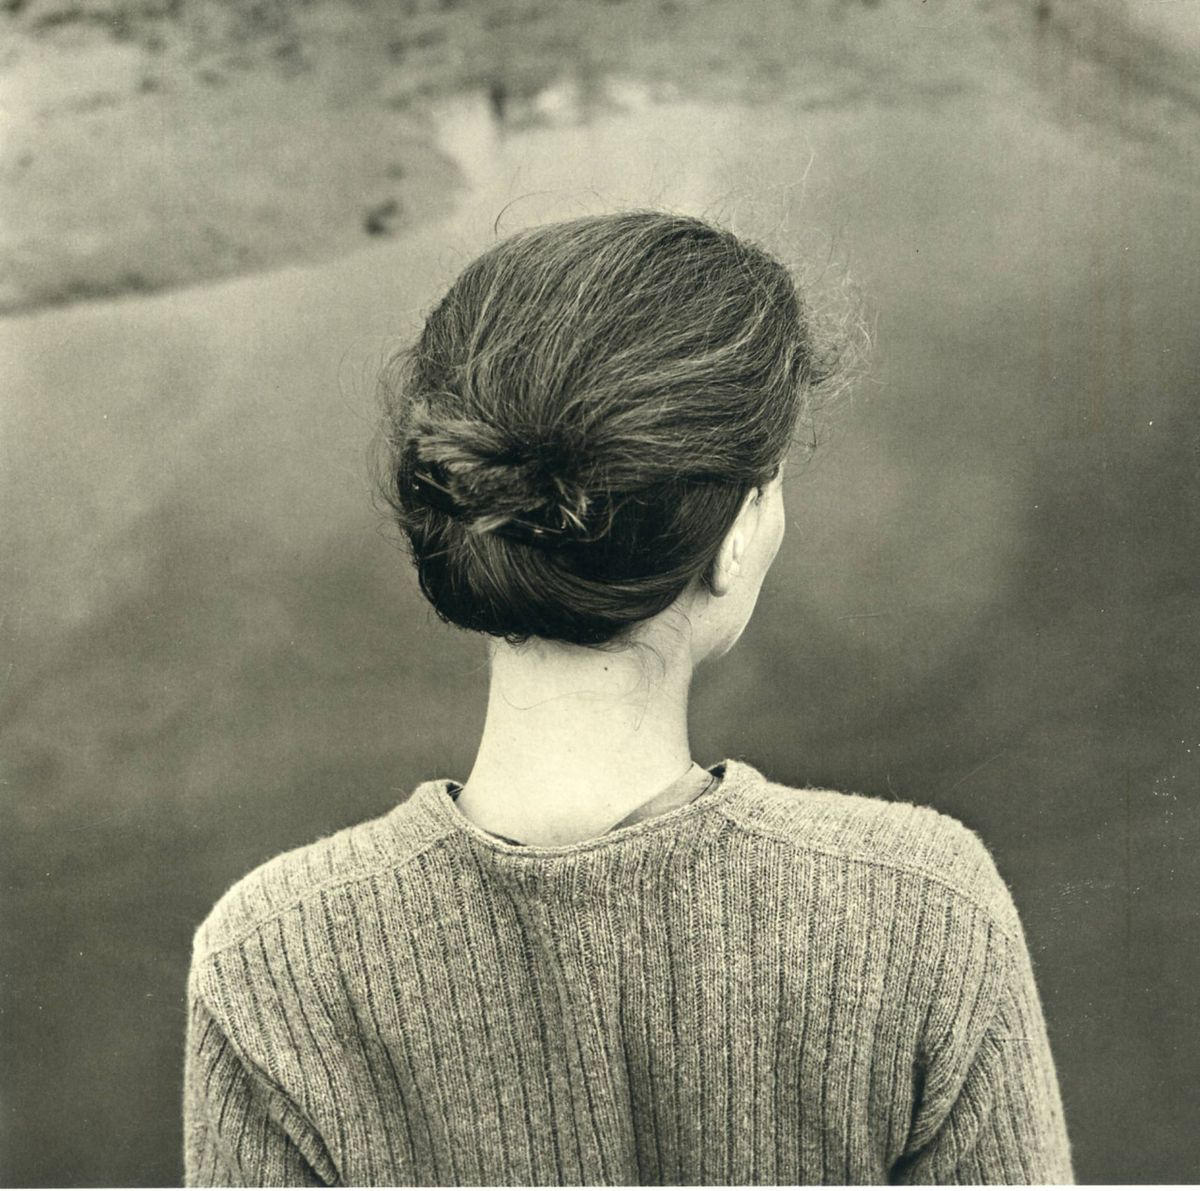 Emmet Gowin // Edith // Chincoteague Island (Virginia) // 1967 // Gelatin silver print